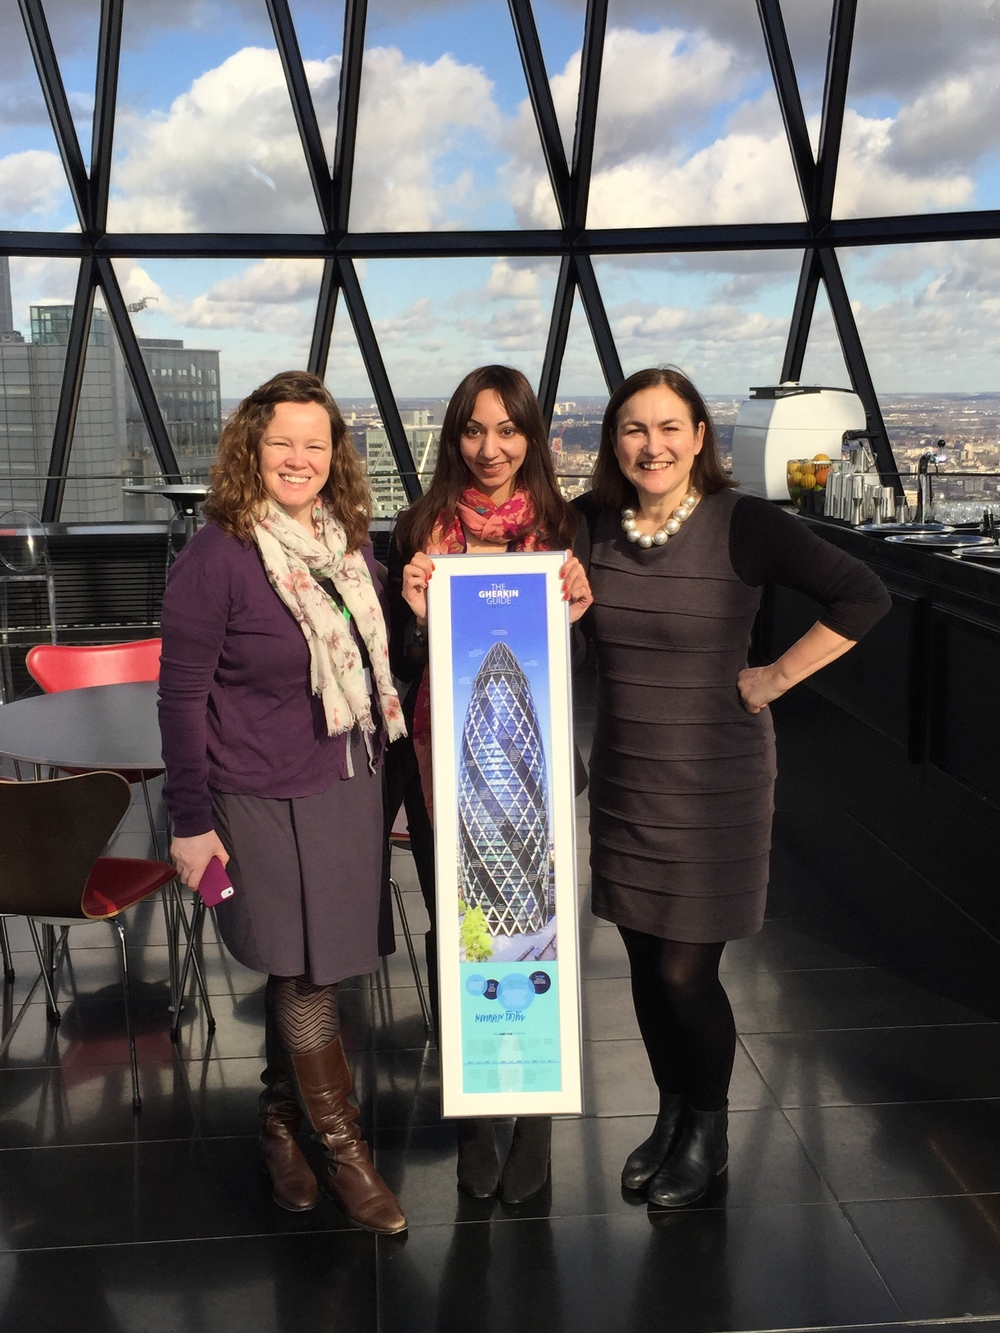 Presenting last year's Individual Top Fundraiser, Barinder Randhawa, with her Norman Foster signed print. Gherkin Challenge 2014. Will it be you this year?